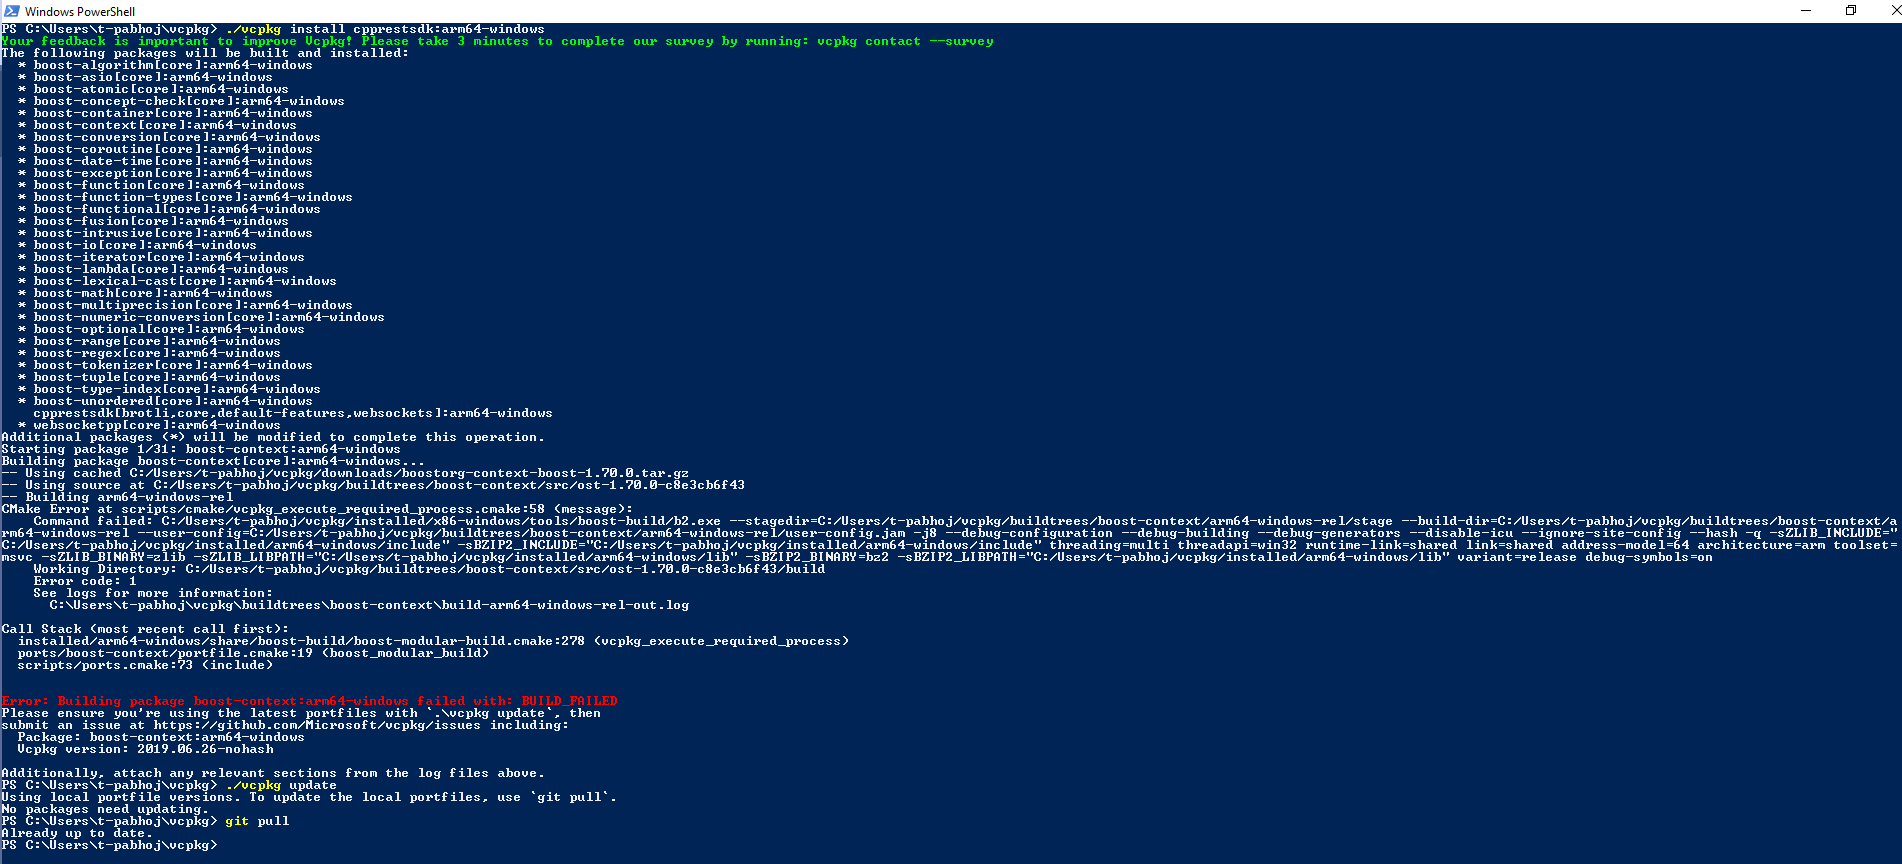 Failed to install cpprestsdk arm64-windows · Issue #7146